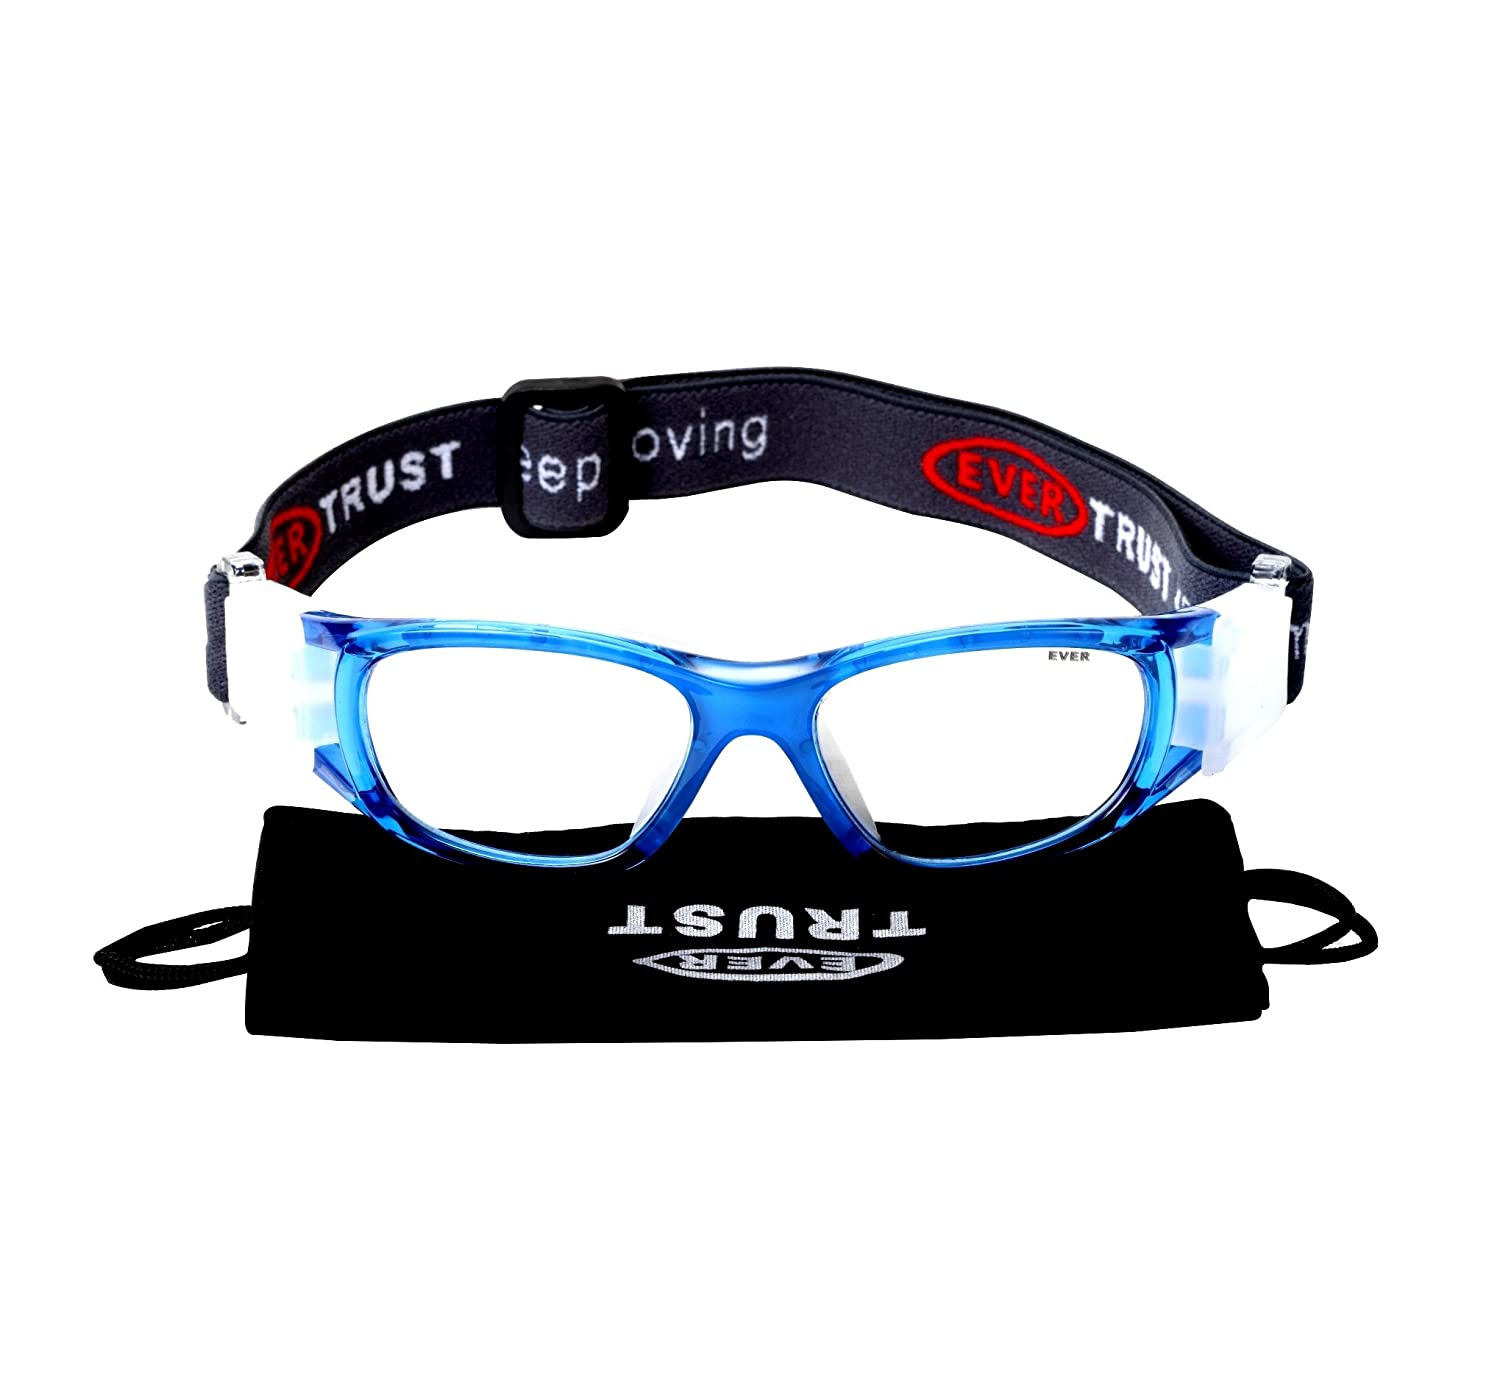 da12f936ff EverTrust EVERSPORT Kids Sports Goggles Safety Protective Basketball Glasses  for Children with Adjustable Strap for Basketball Football Volleyball  Hockey ...